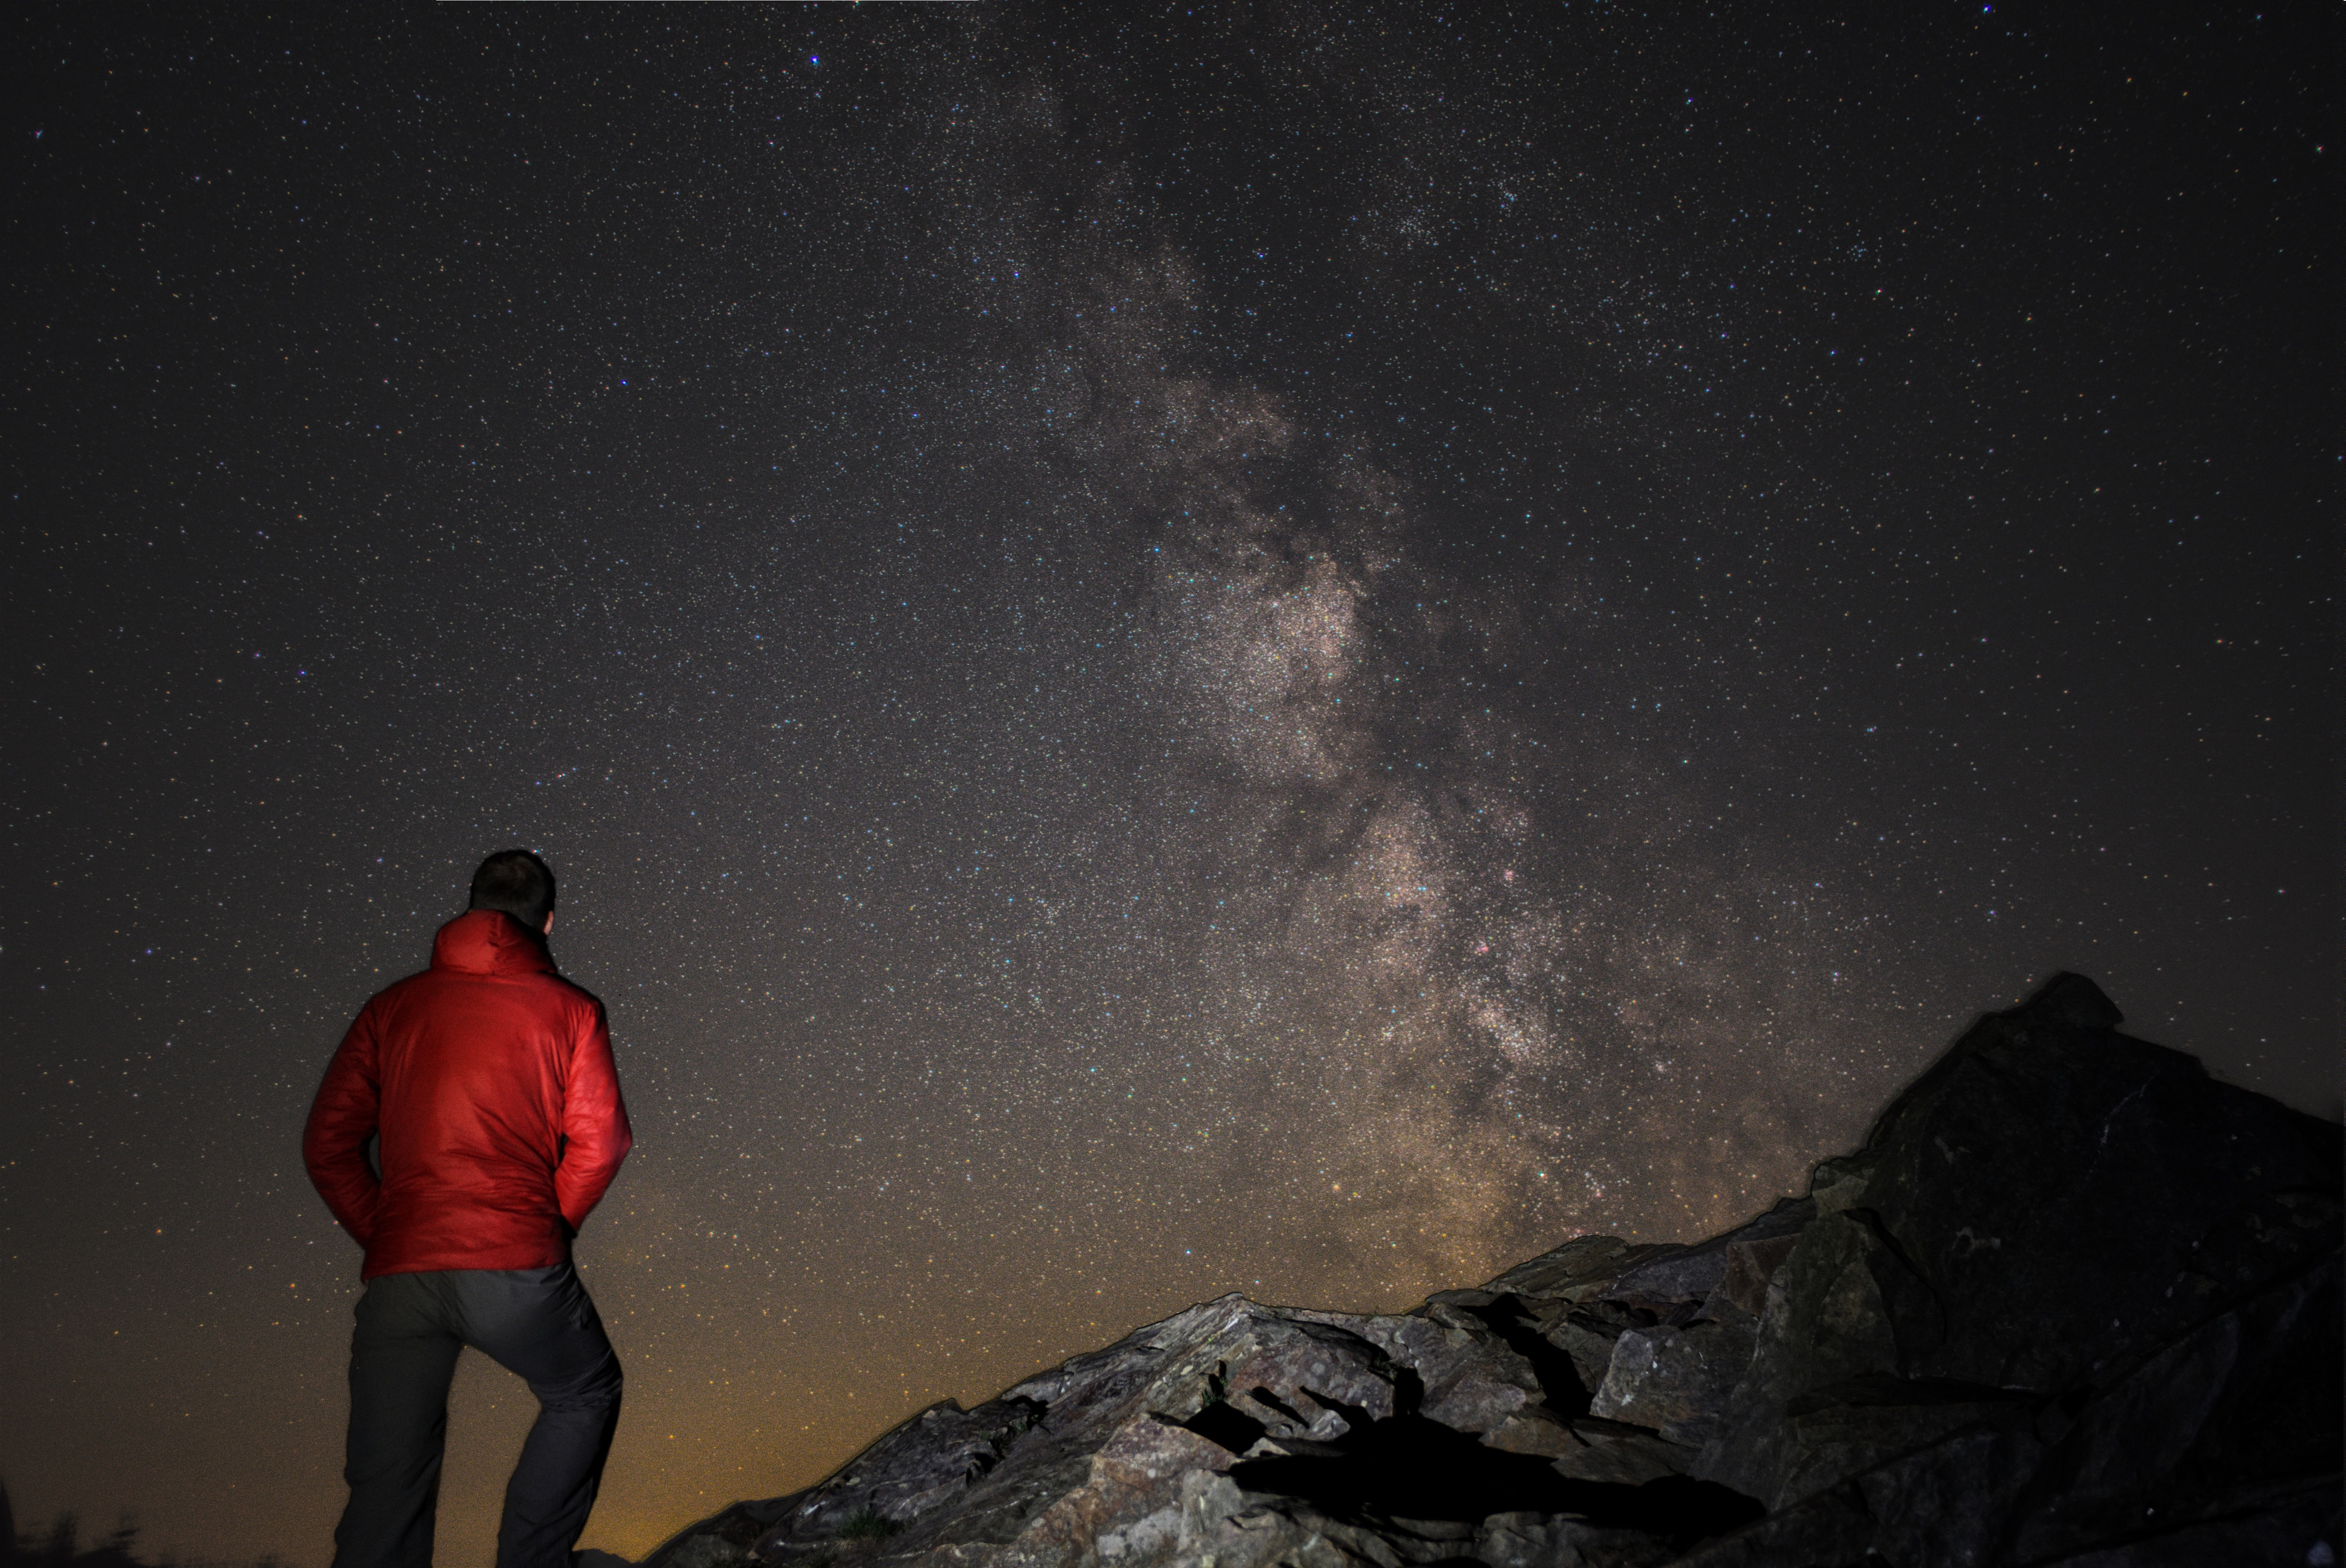 man wearing red jacket watching the milkyway